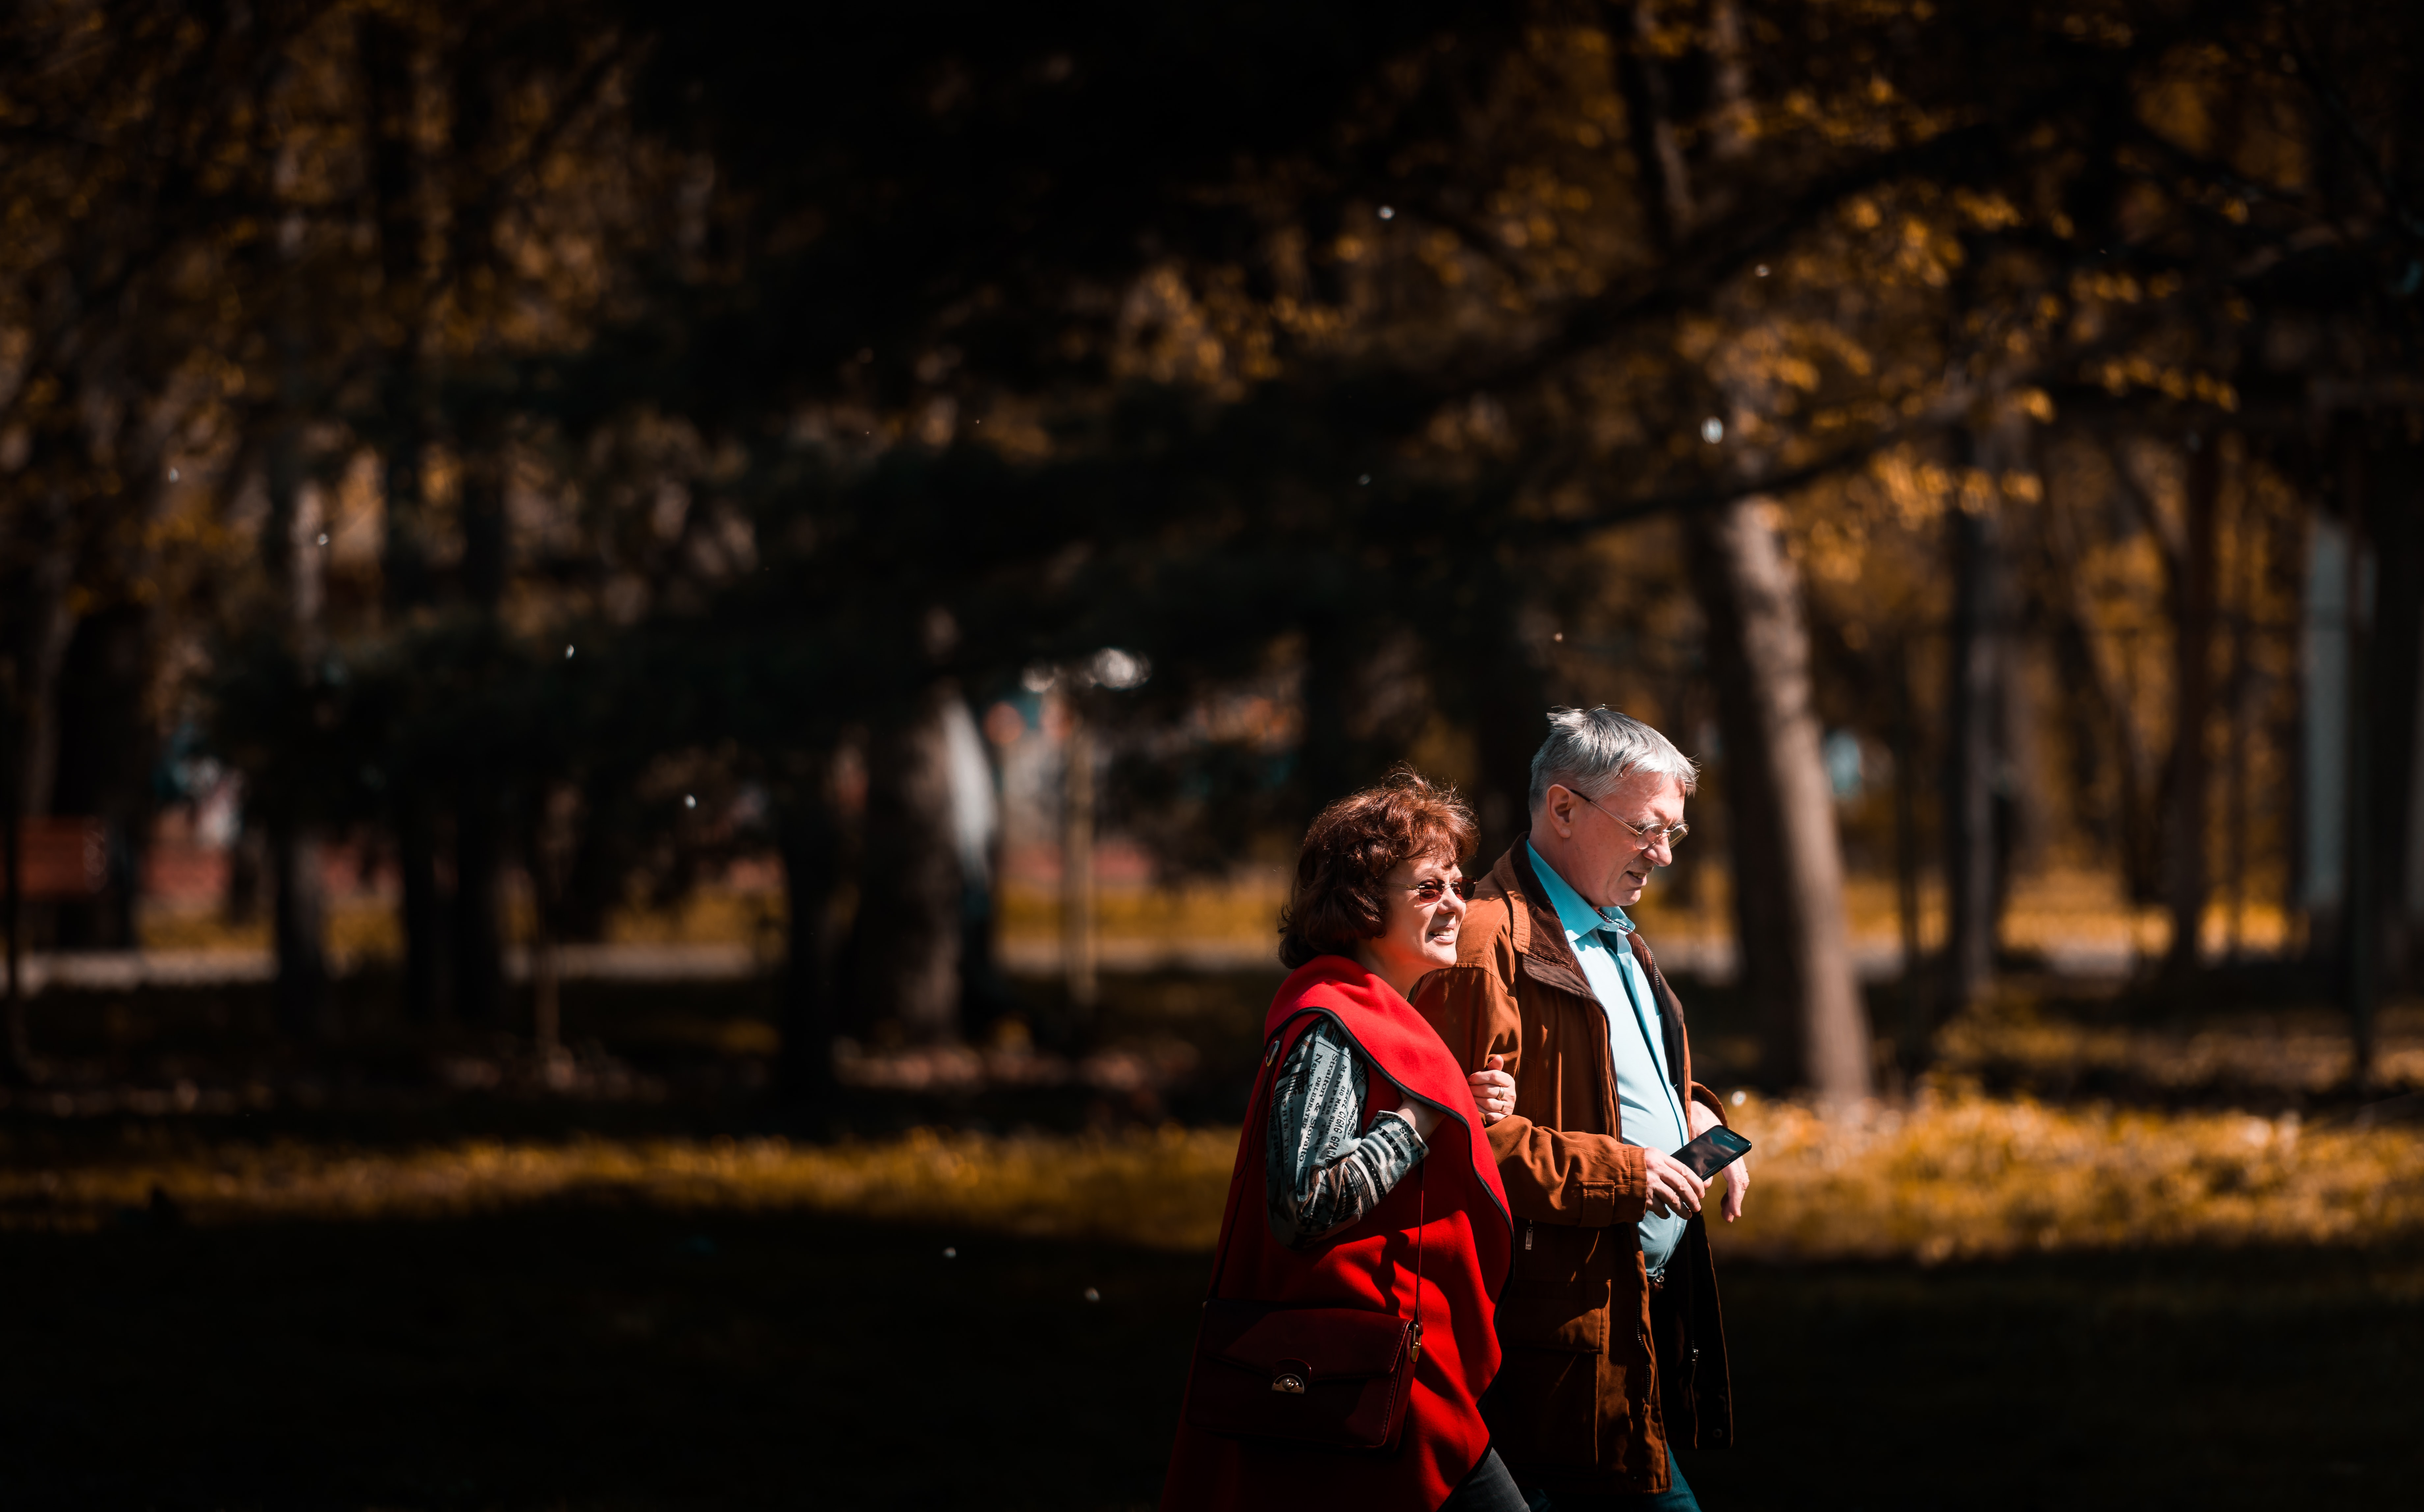 man and woman walking beside trees